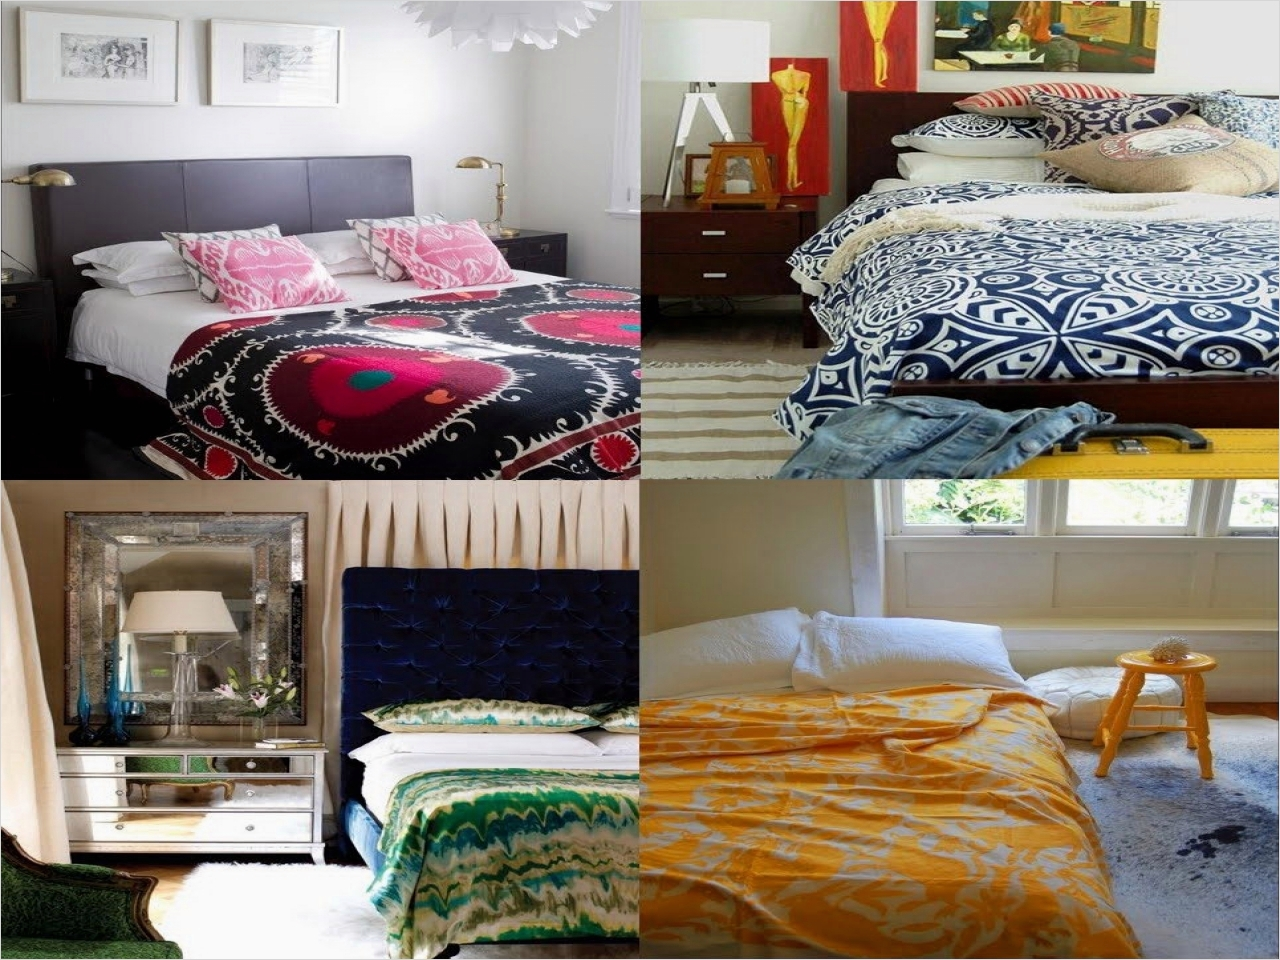 43 Stunning Small Bedroom Decorating Ideas On A Budget 59 Ideas On How to Decorate A Small Bedroom Fantastic Ideas On Decorating A Small Bedroom On A 5